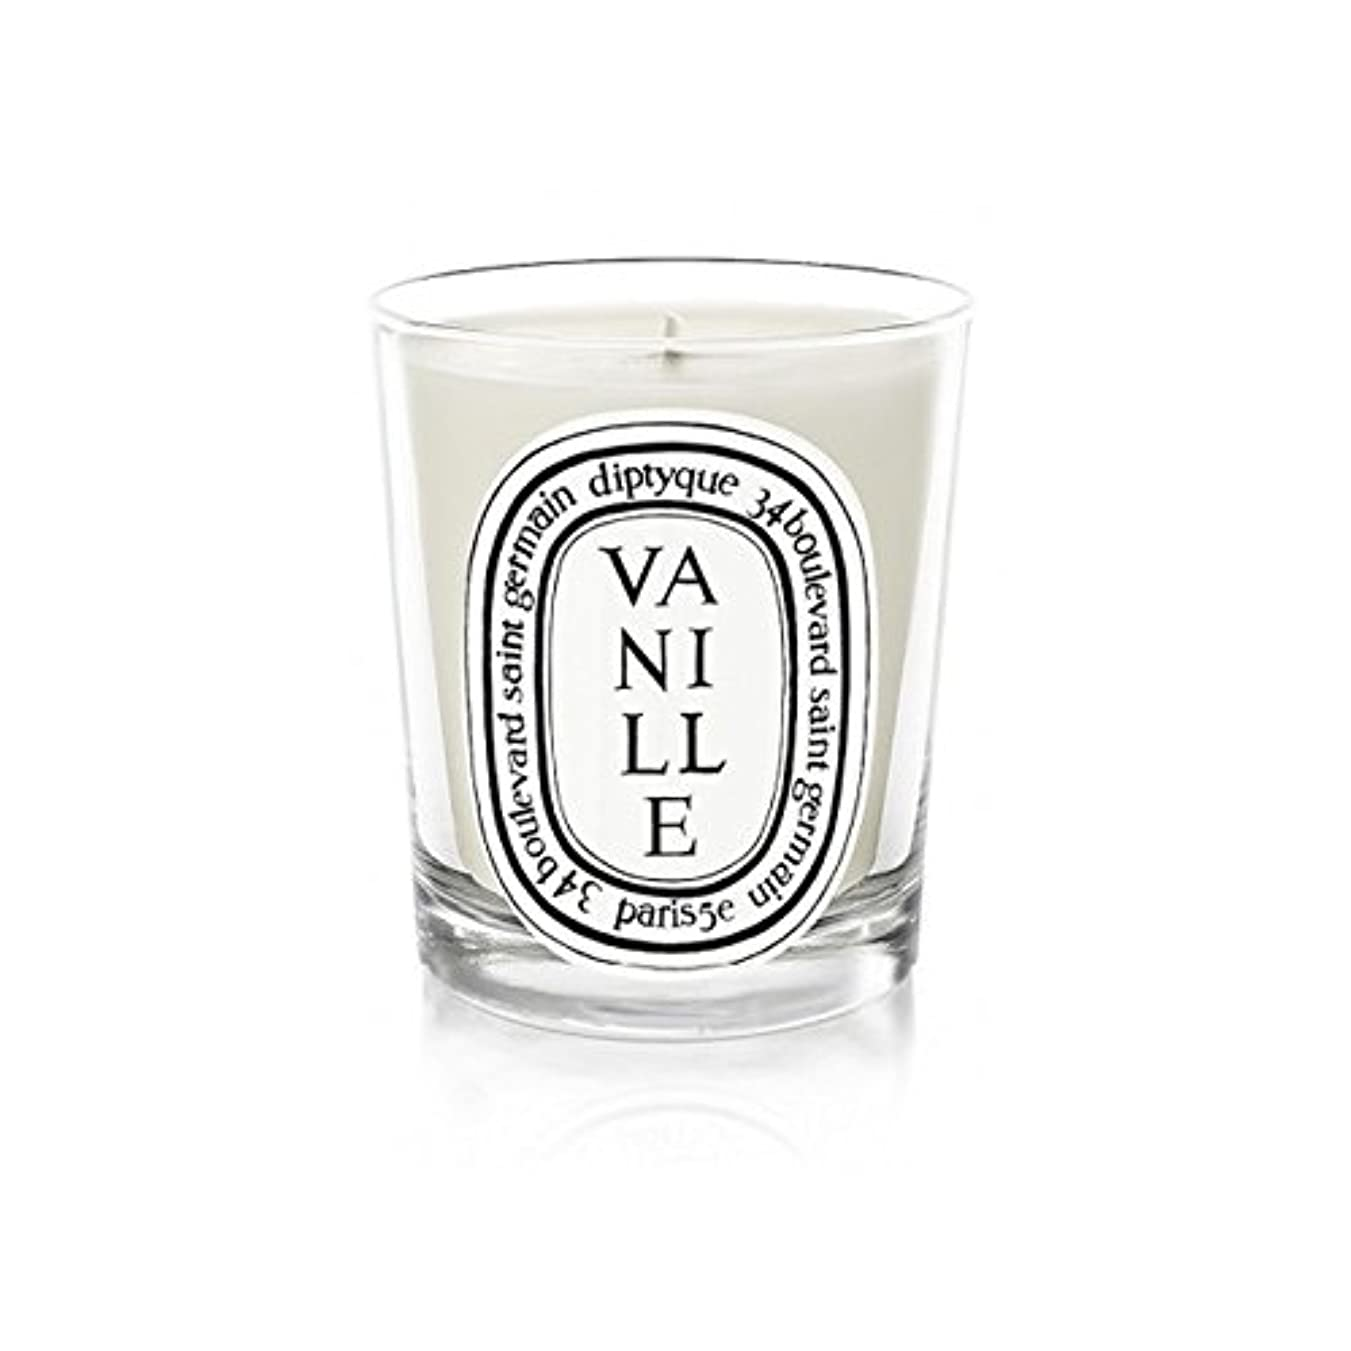 Diptyque Candle Vanille 190g (Pack of 2) - Diptyqueキャンドルバニラ190グラム (x2) [並行輸入品]